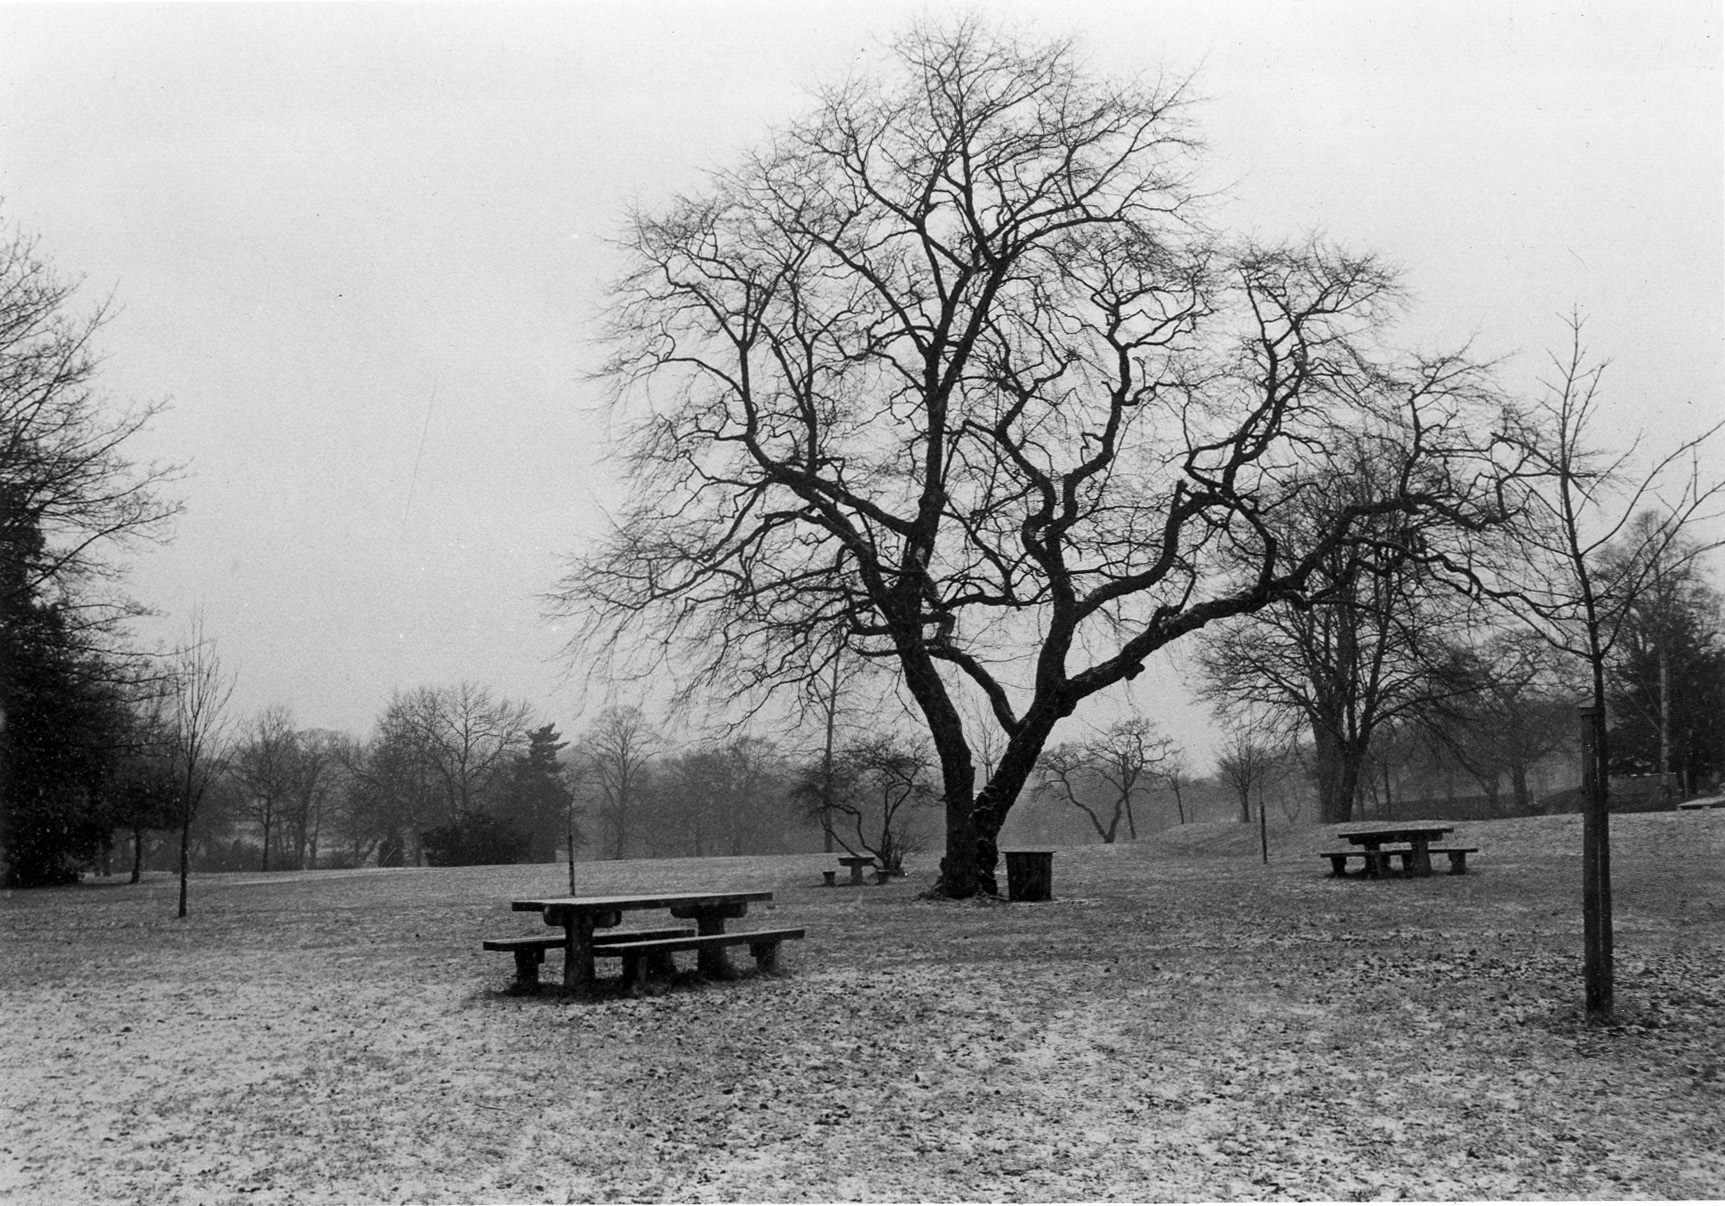 Meanwood Park with Picnic Tables, 1986